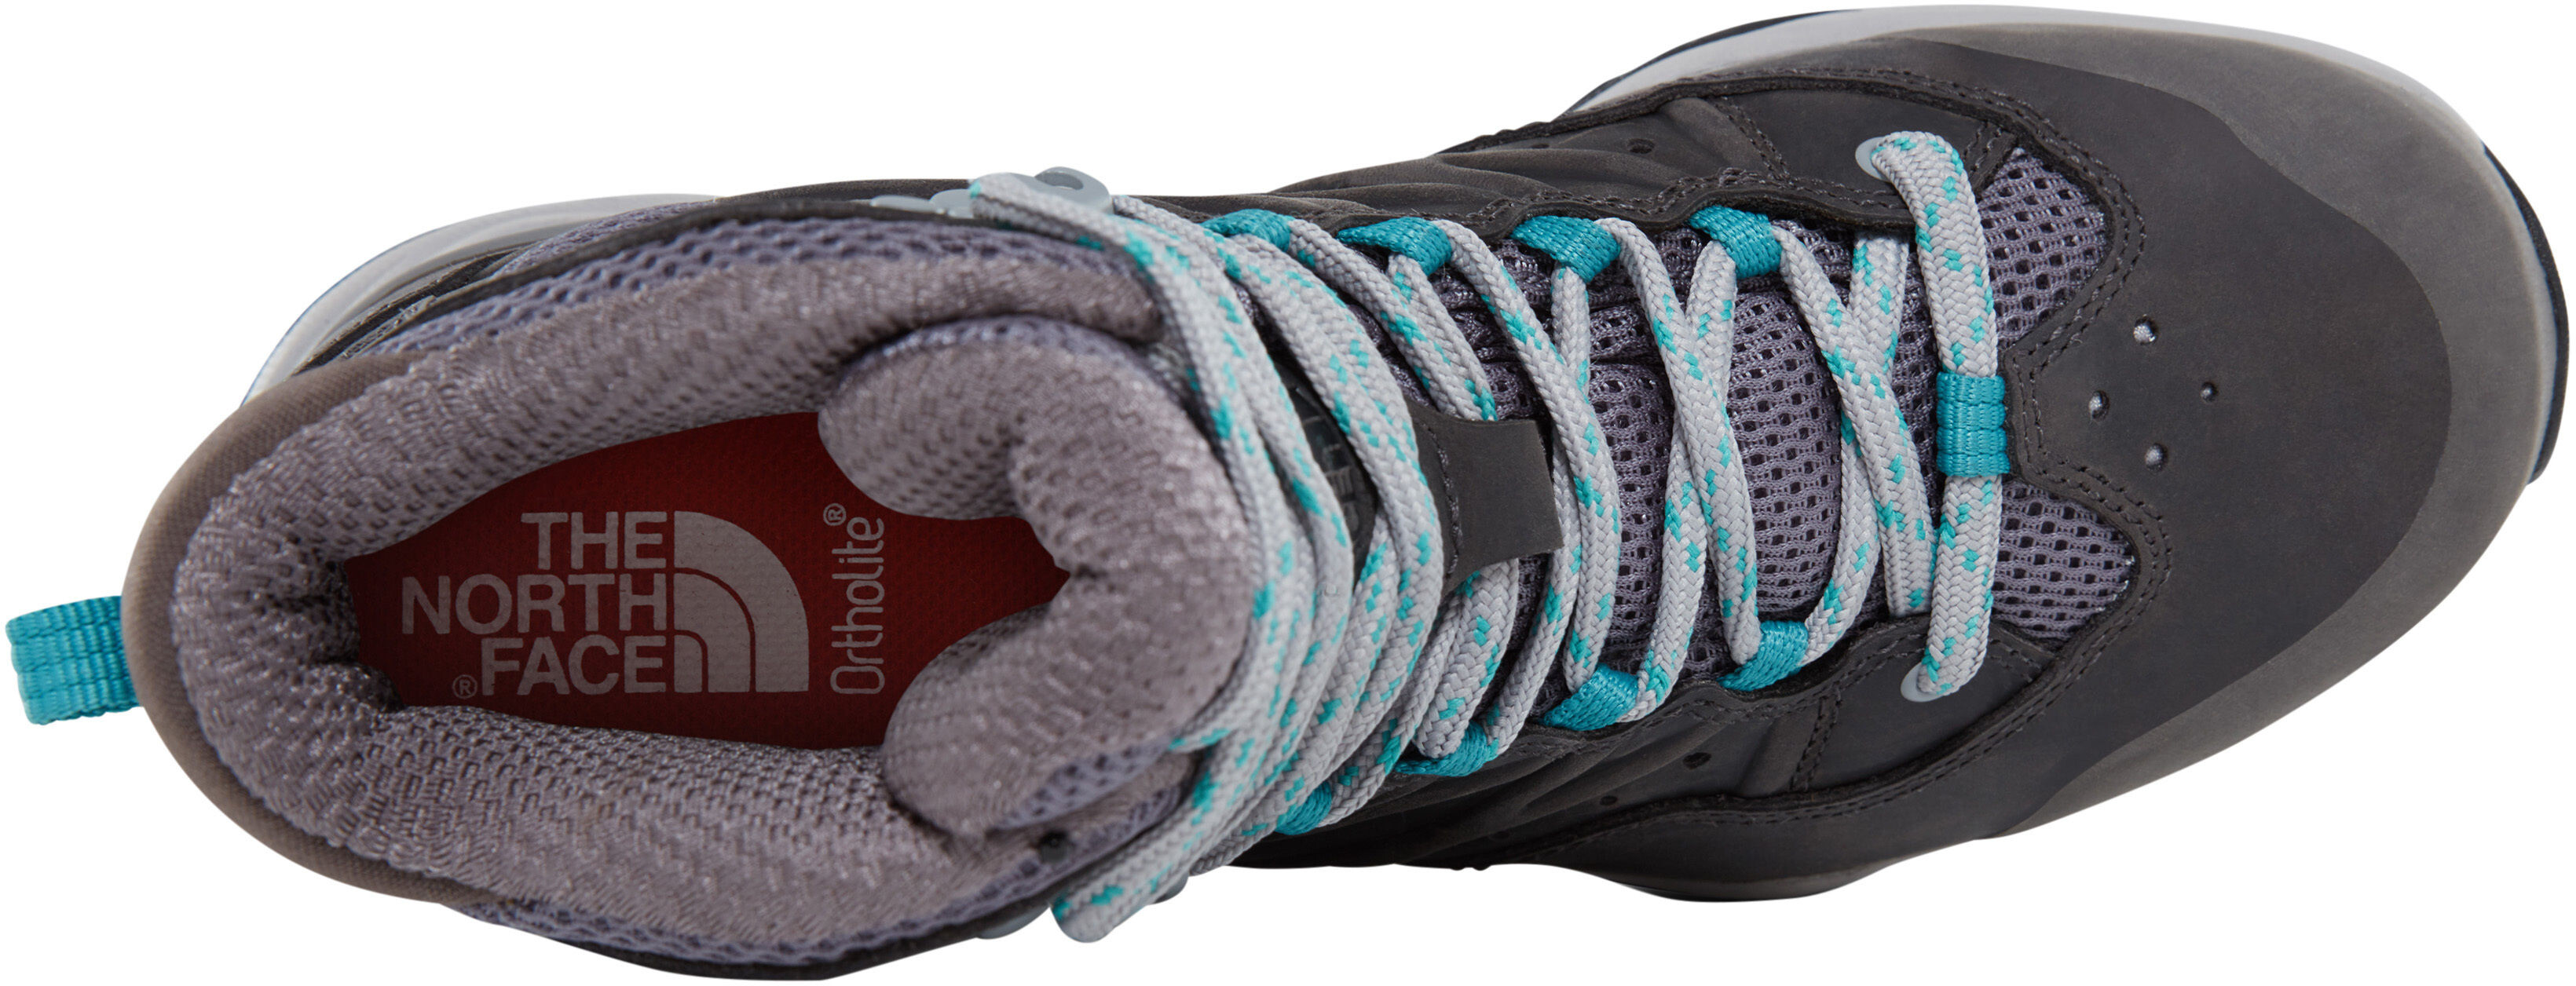 2ca6422ee The North Face Hedgehog Hike II Mid GTX Shoes Women q-silver grey/porcelain  green